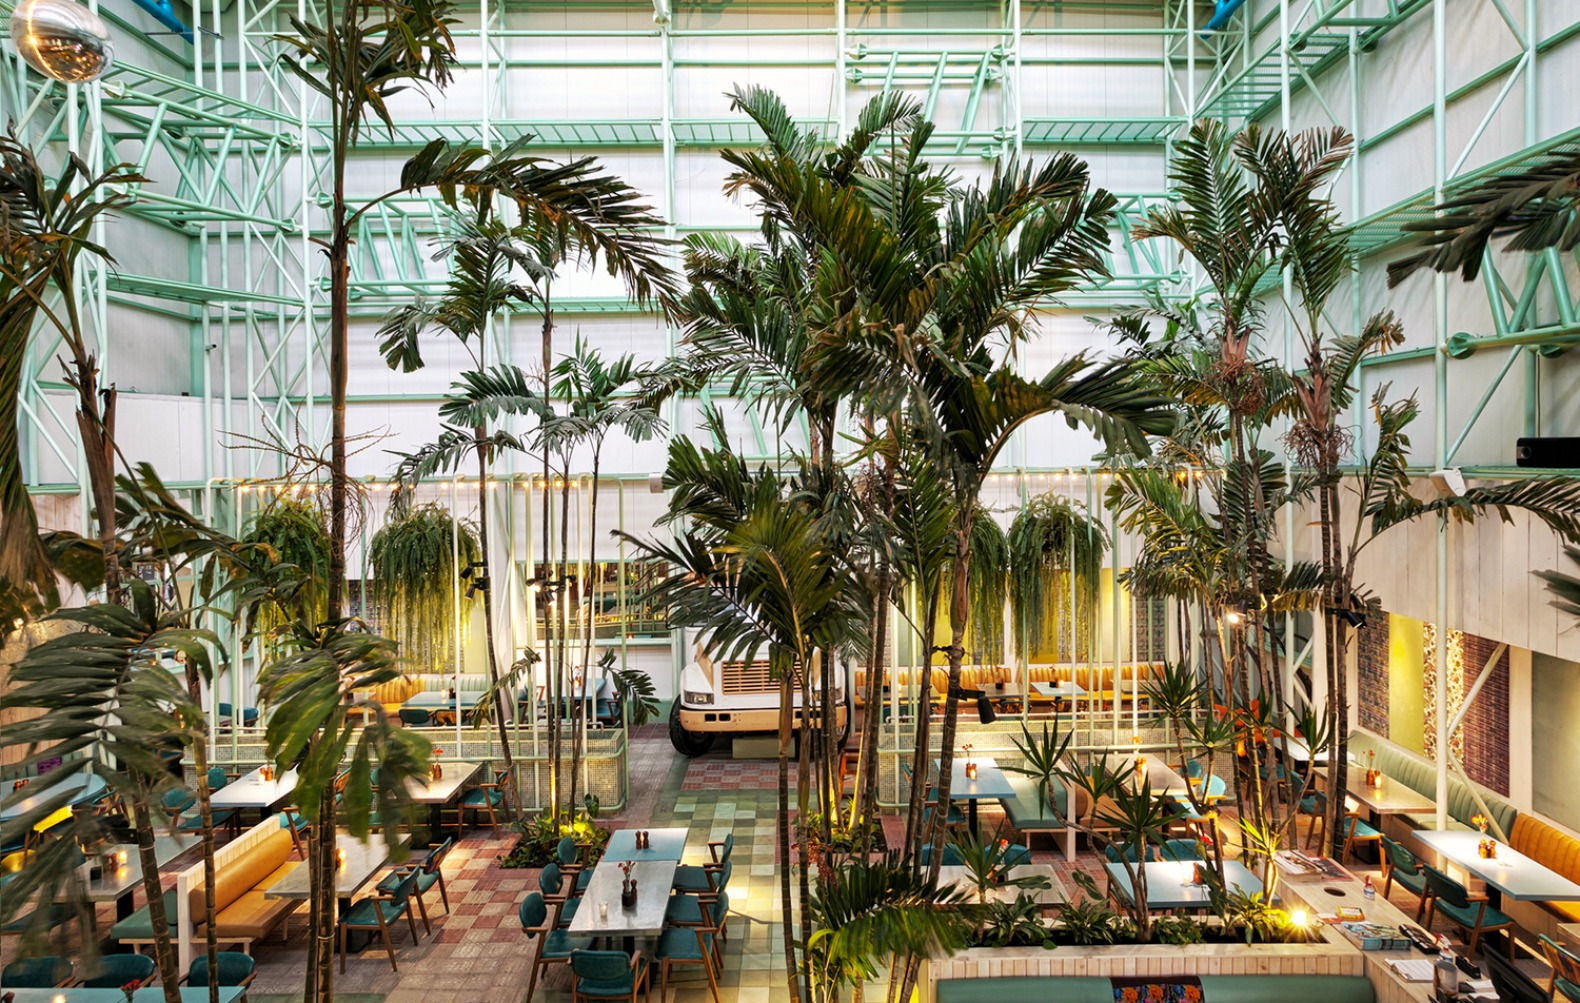 This incredible urban oasis cafe is filled with living